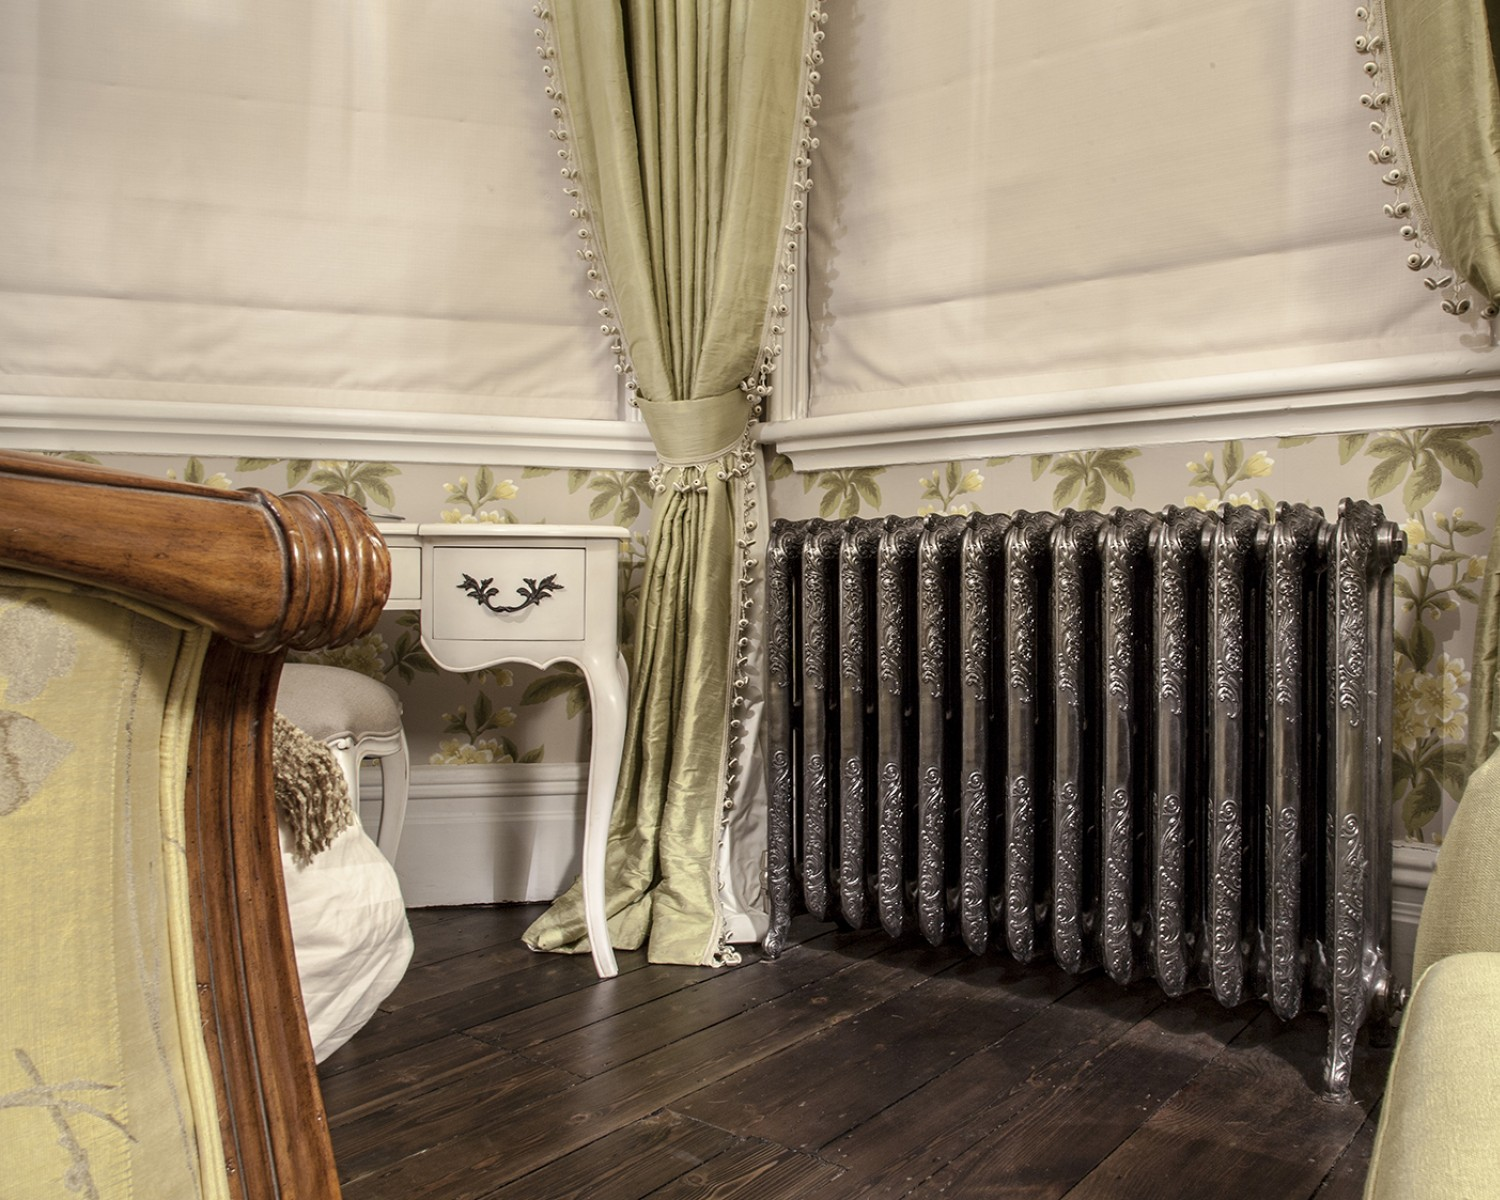 Cast Iron Radiator Inspiration - Castrads